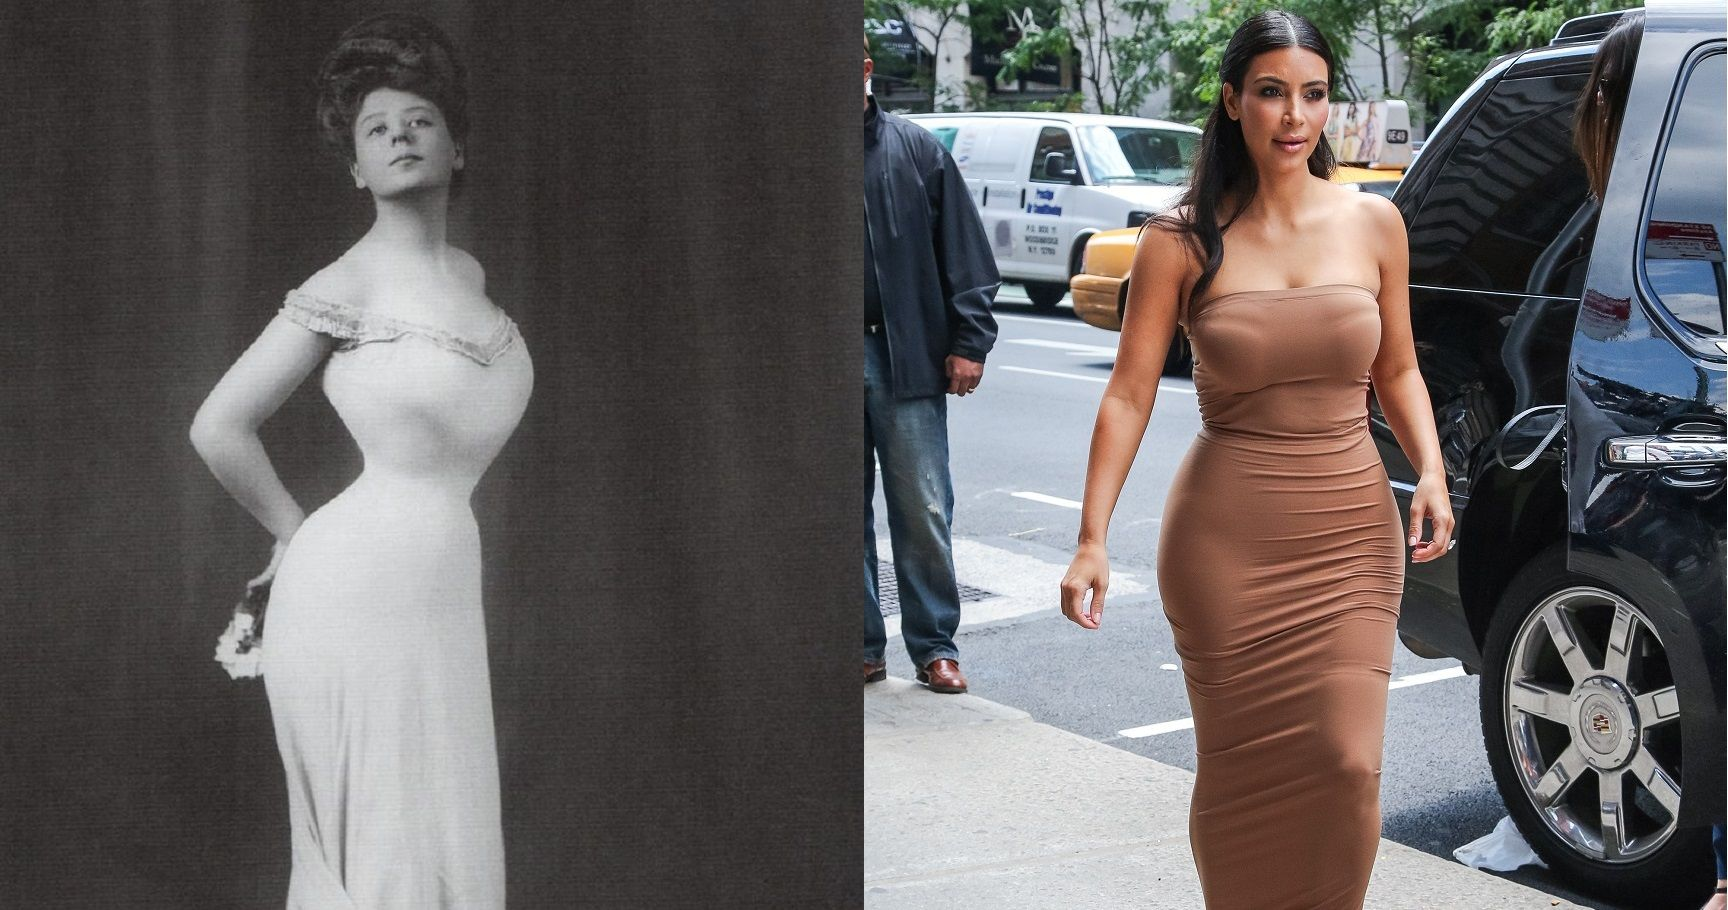 11 Ways Women's Bodies Have Changed Over The Past Century